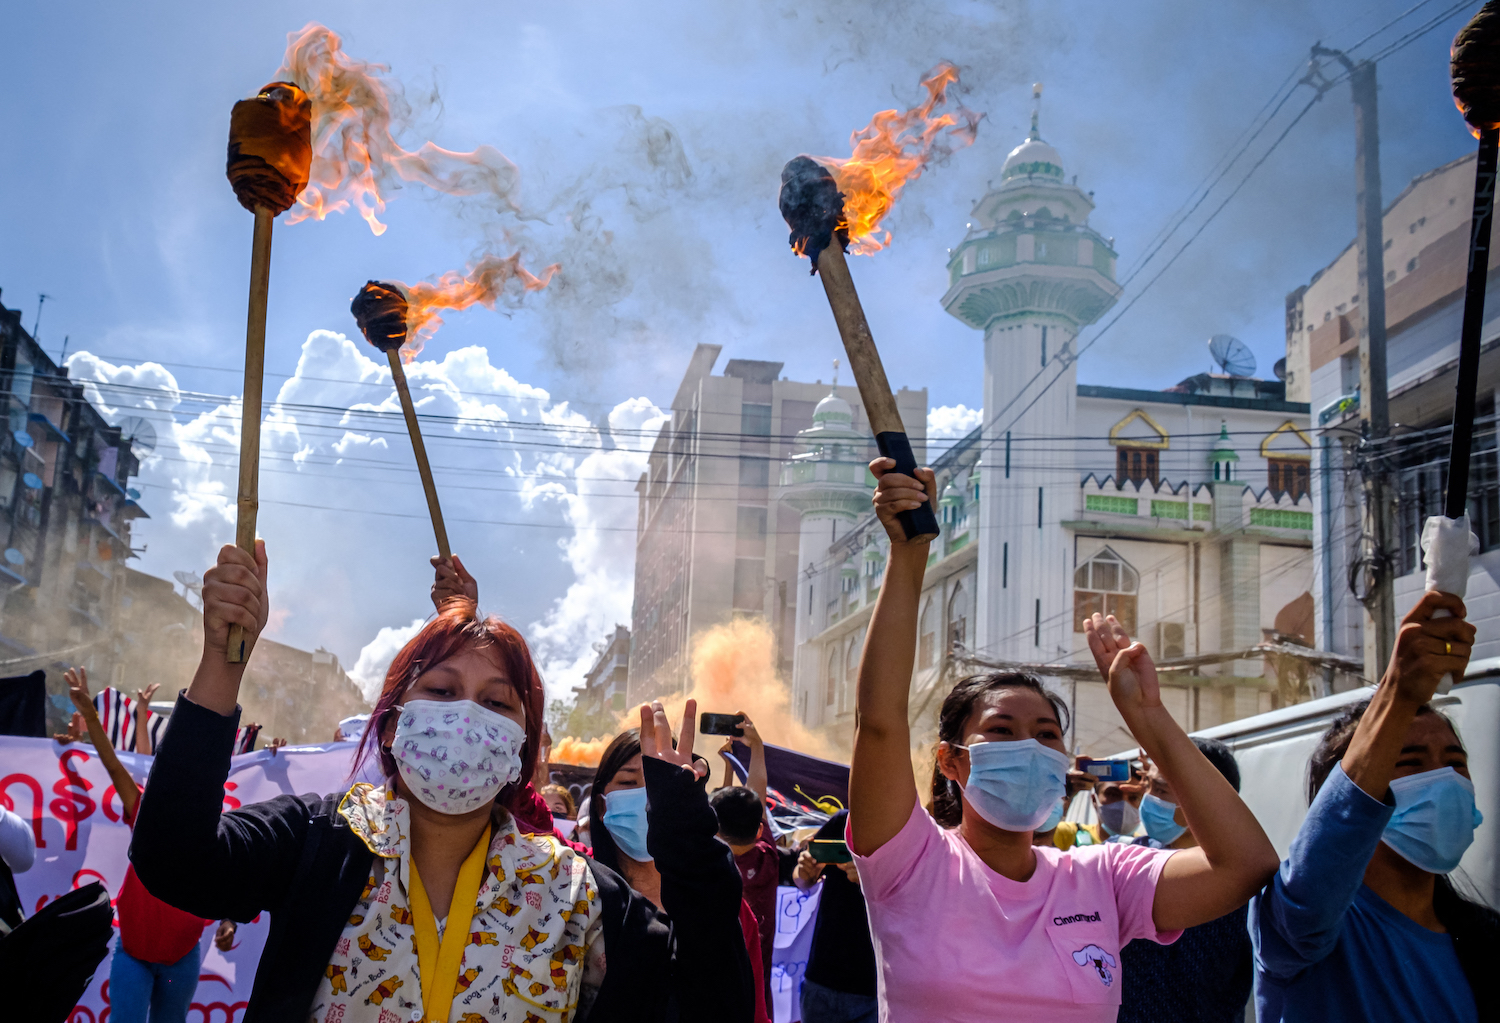 Women carry burning torches as they march during a demonstration against the military coup in Yangon on July 14. (AFP)